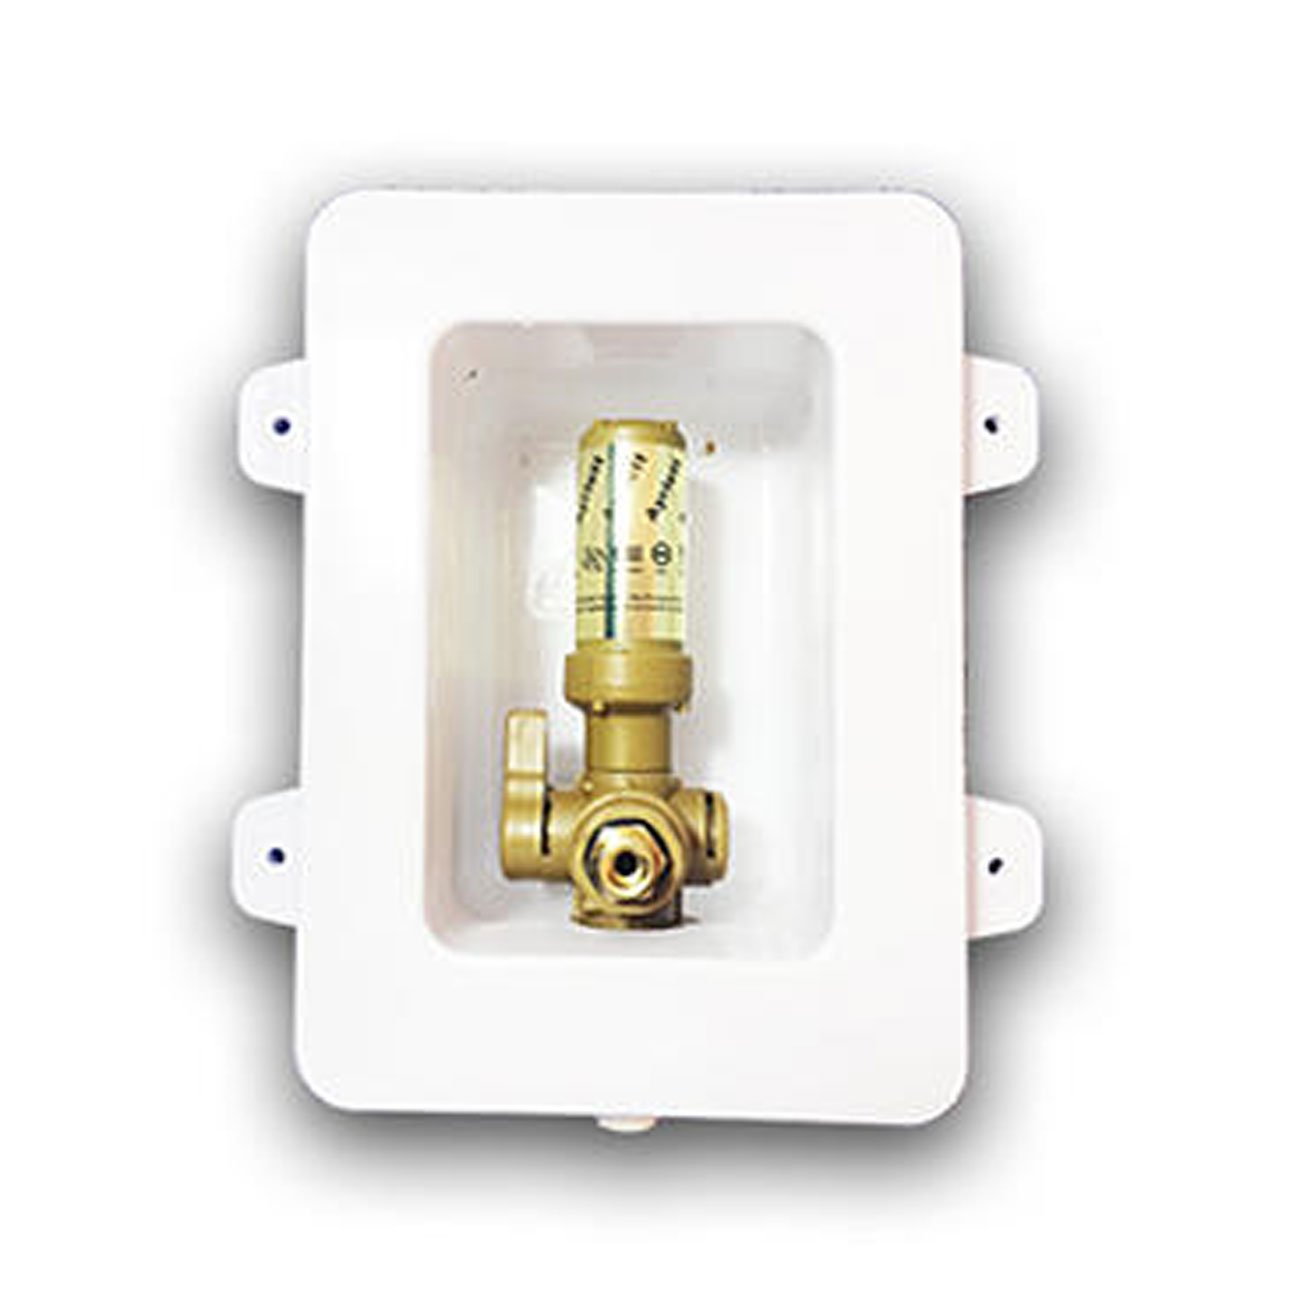 1//4 Brass Threads UPONOR Connection and Arrester Ayrlett FR 3282 Pre-Assembled Fire Rated Ice Box with 1//4 Turn Poly Alloy Valves